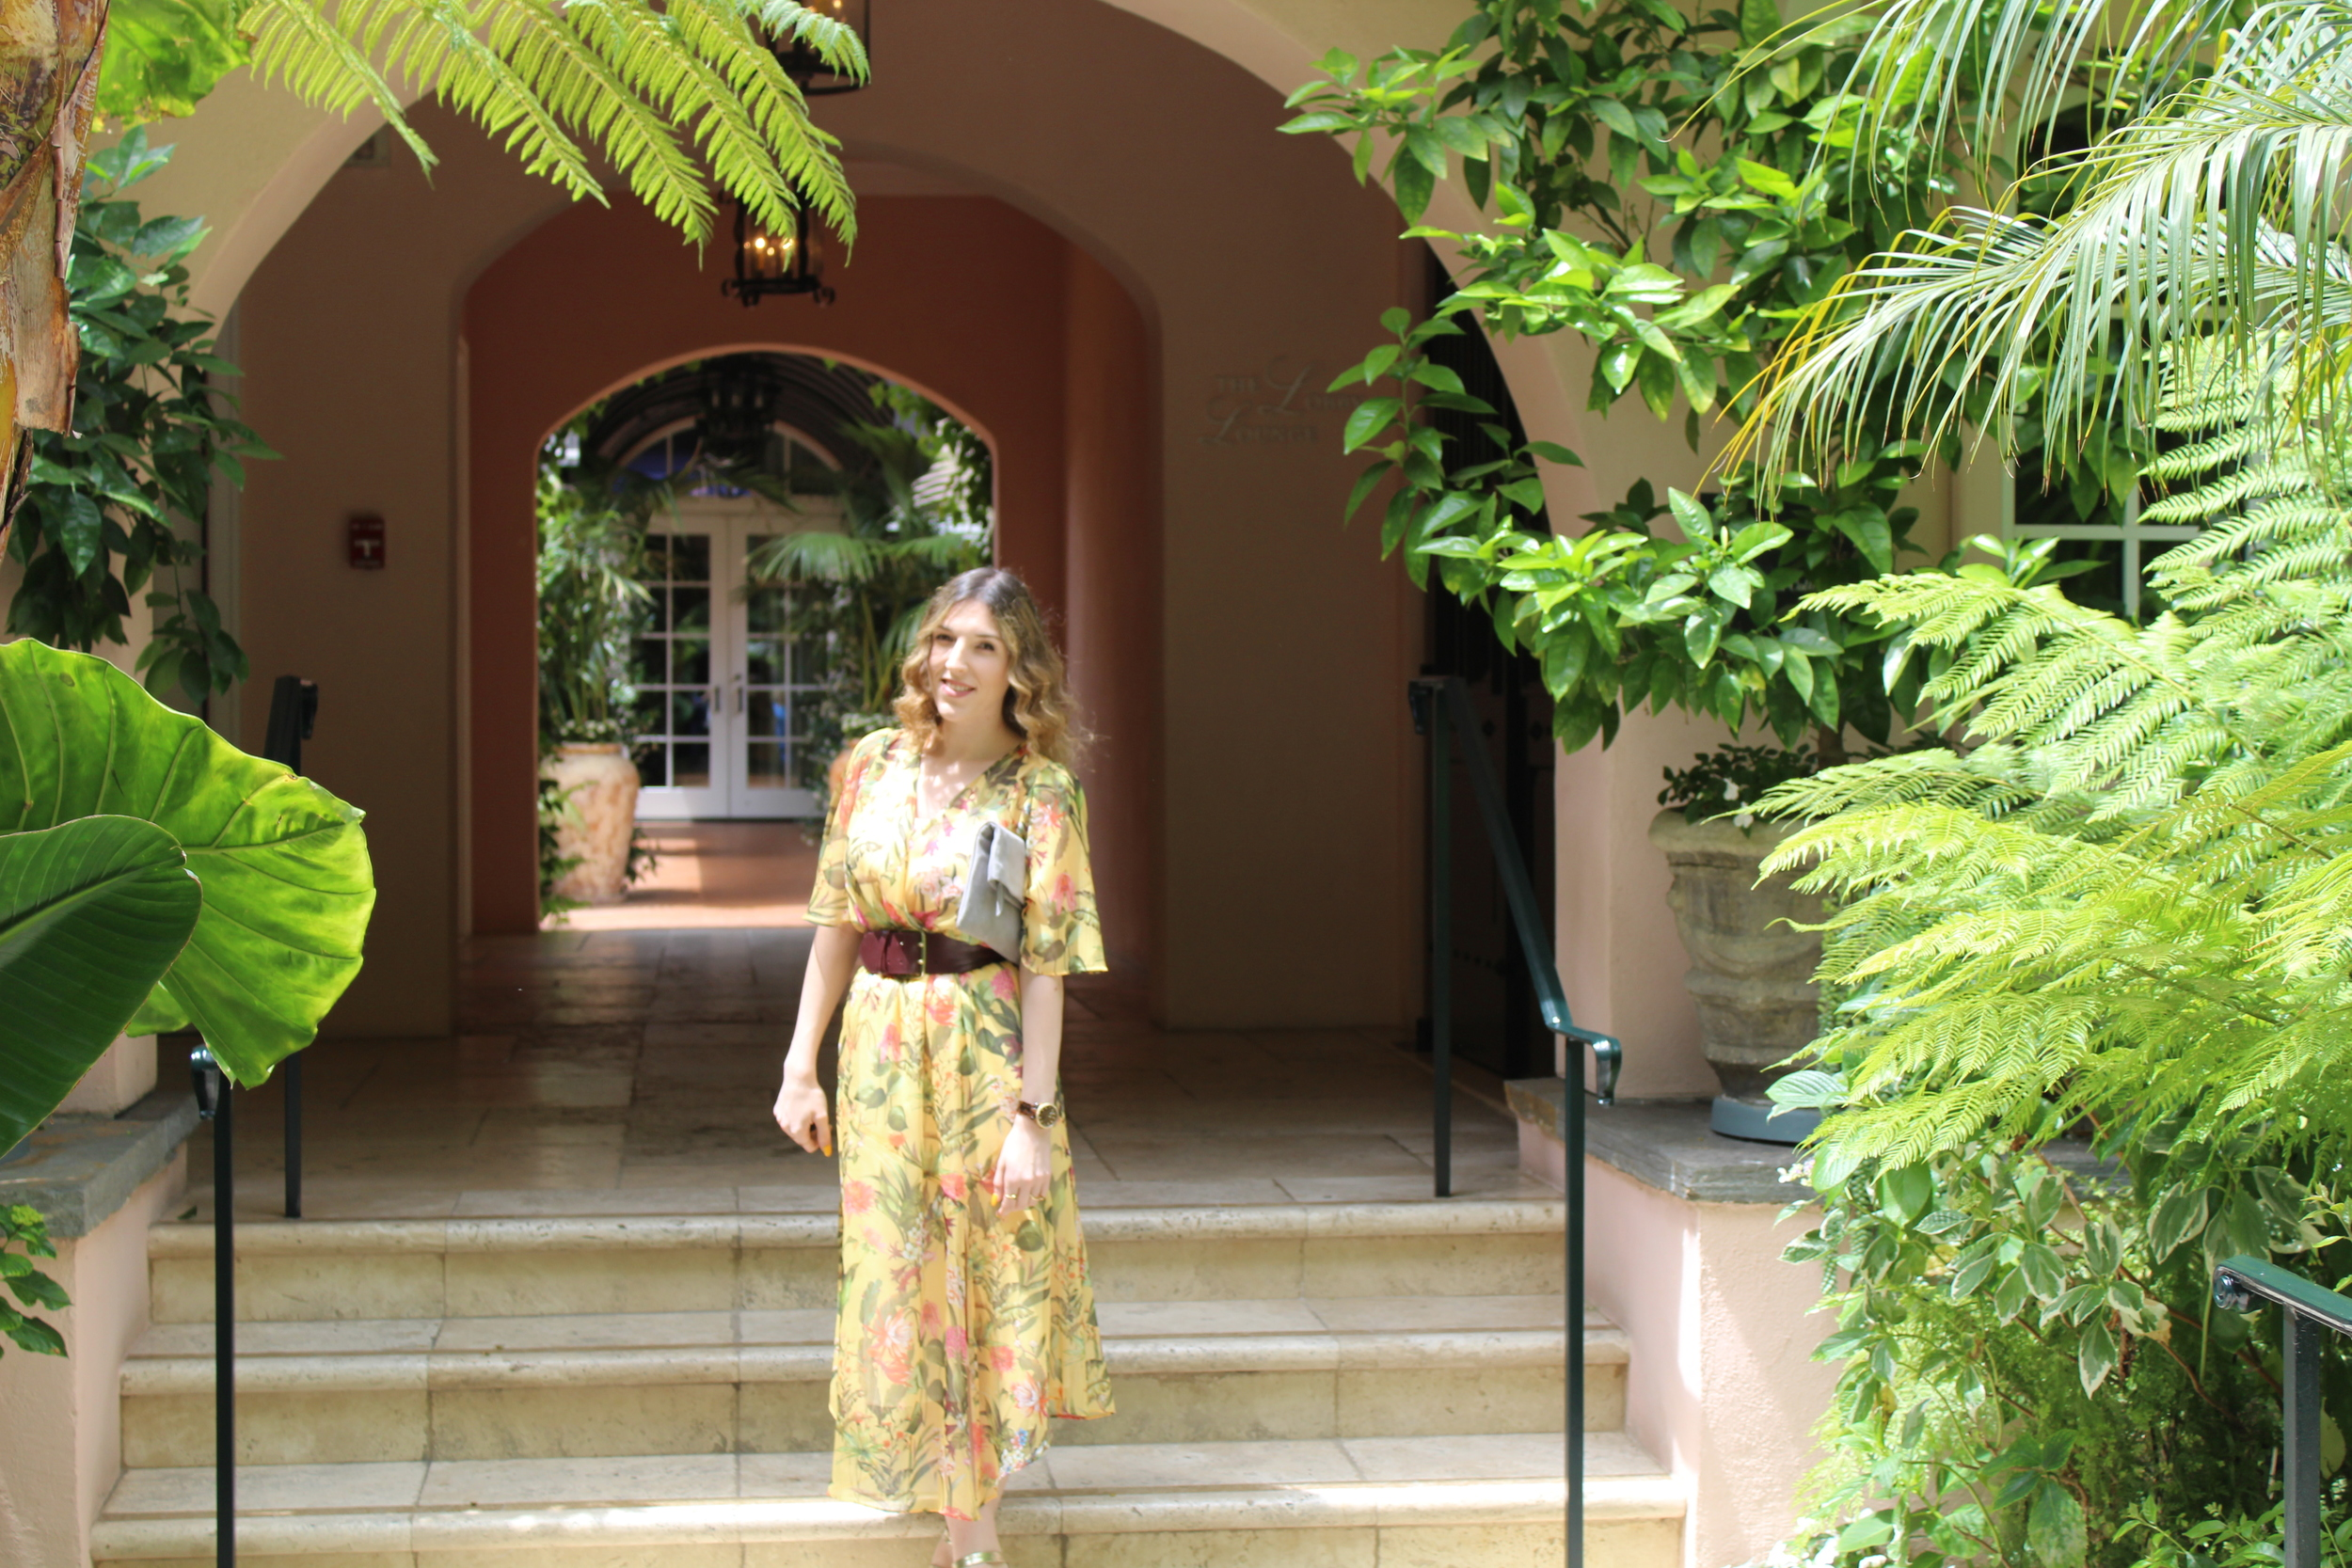 The Hotel Bel-Air is pink and has floral everywhere so I was enjoying taking pictures in this dress. I really like that the dress is yellow with a tropical flower print, which you don't see too often so it made feel really unique but also fresh.  The dress also had an asymmetrical finish which you can't really tell by looking at it but it made it added a cool element to it.